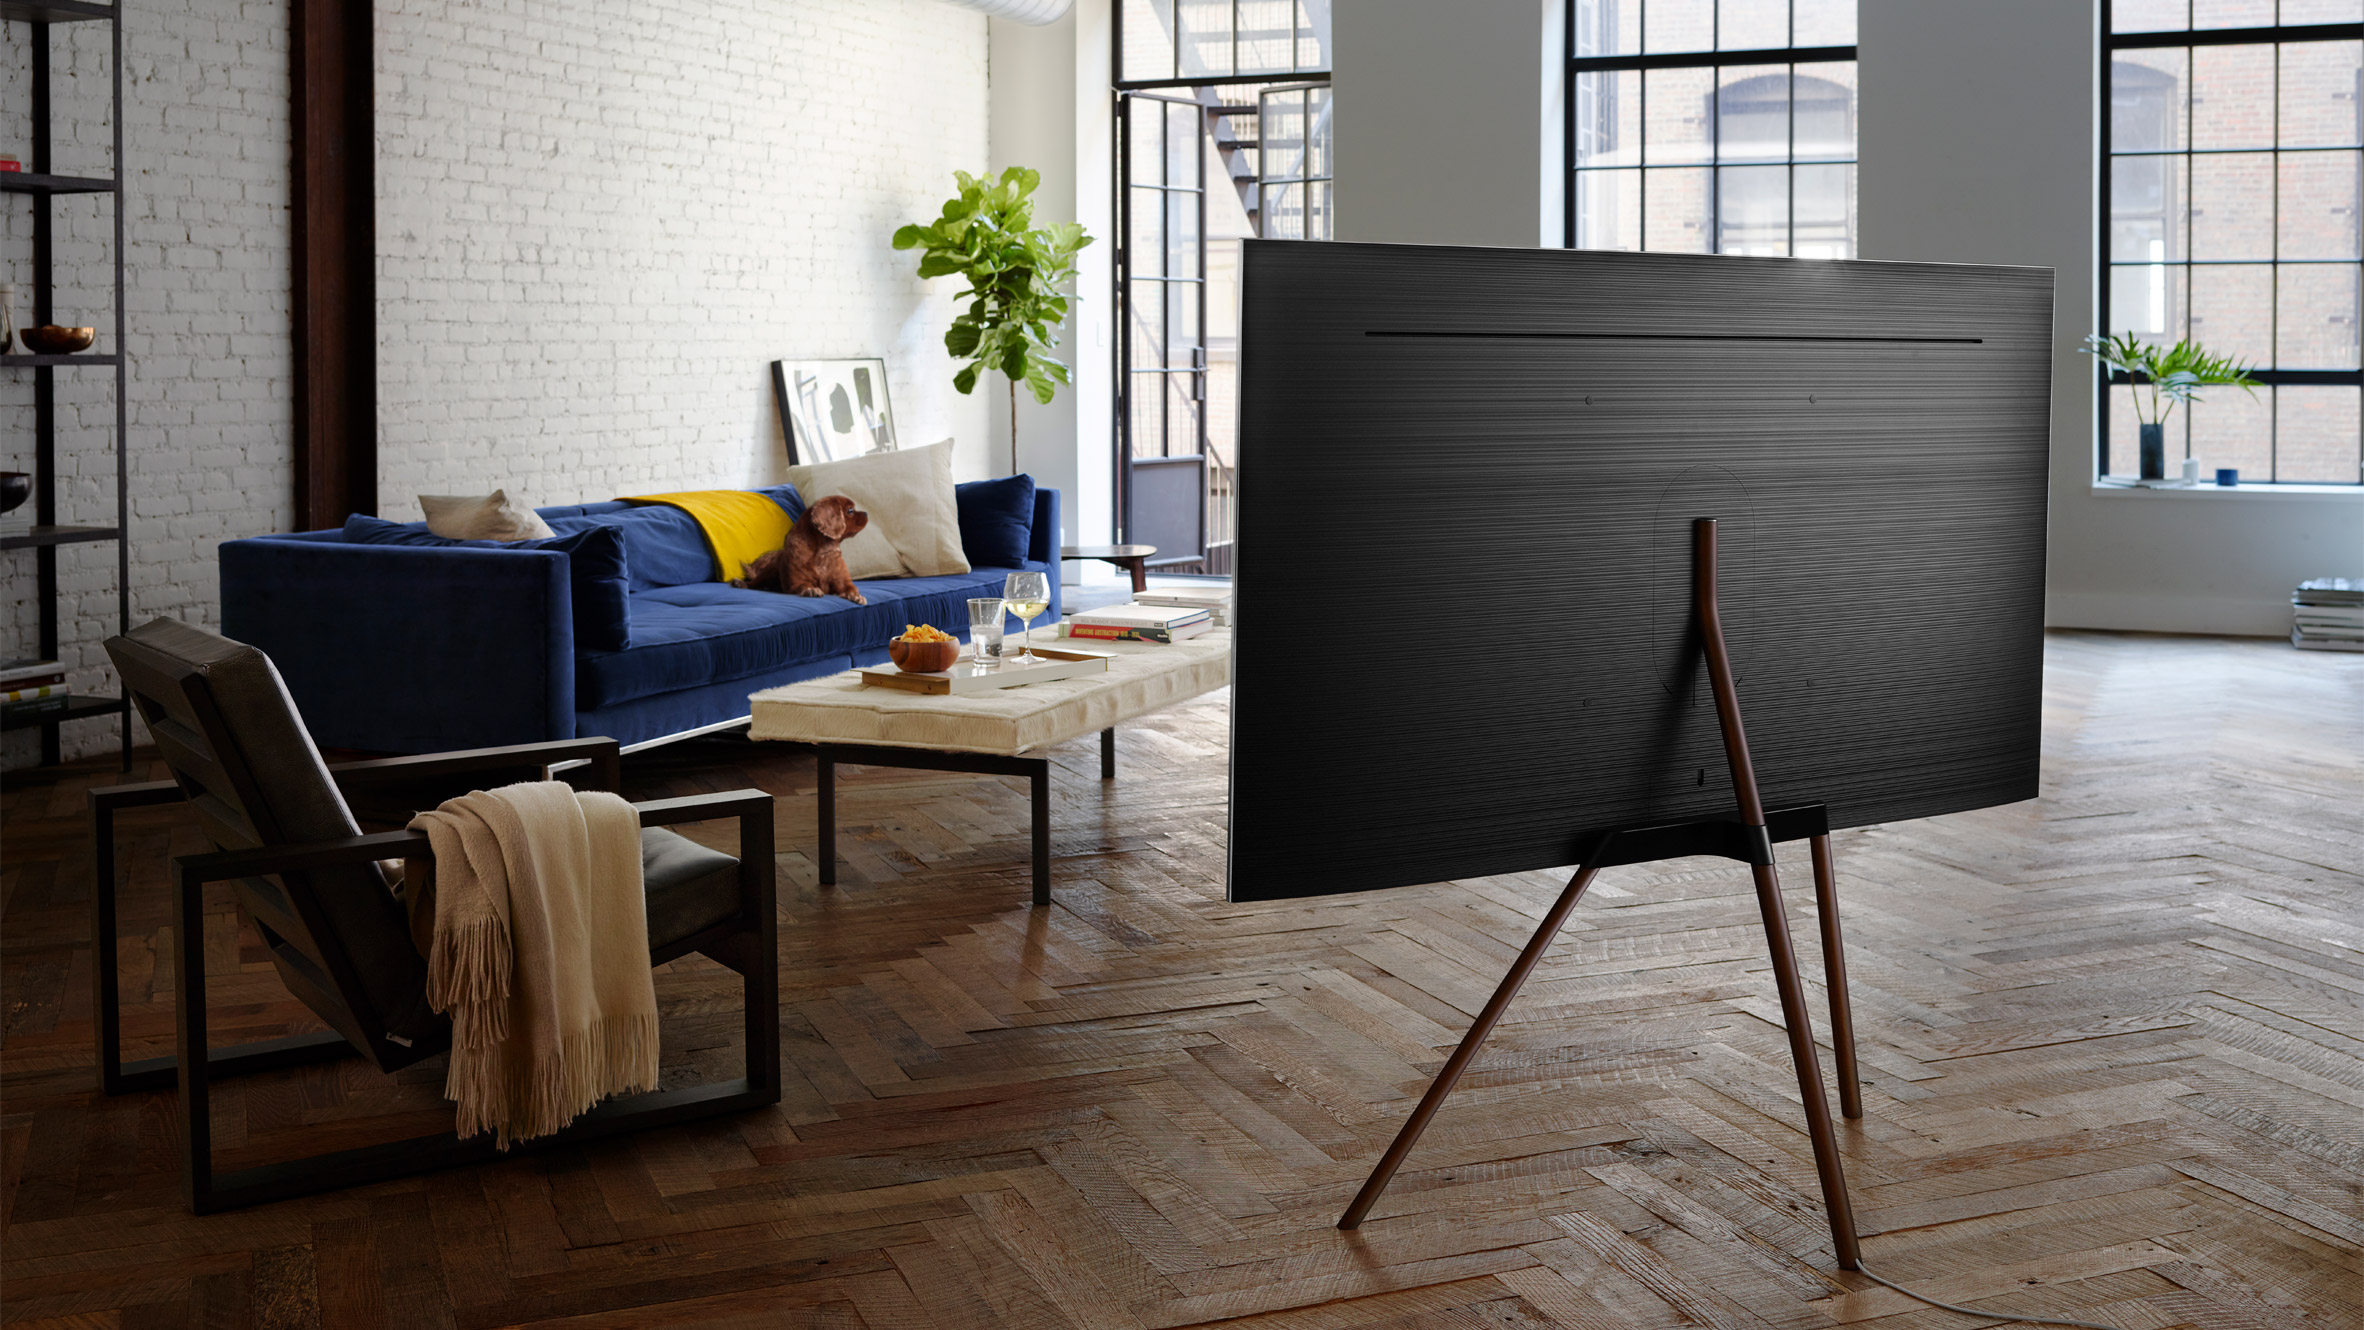 samsung tv on stand. dezeen and samsung to launch \u20ac30,000 competition rethink the tv stand tv on n